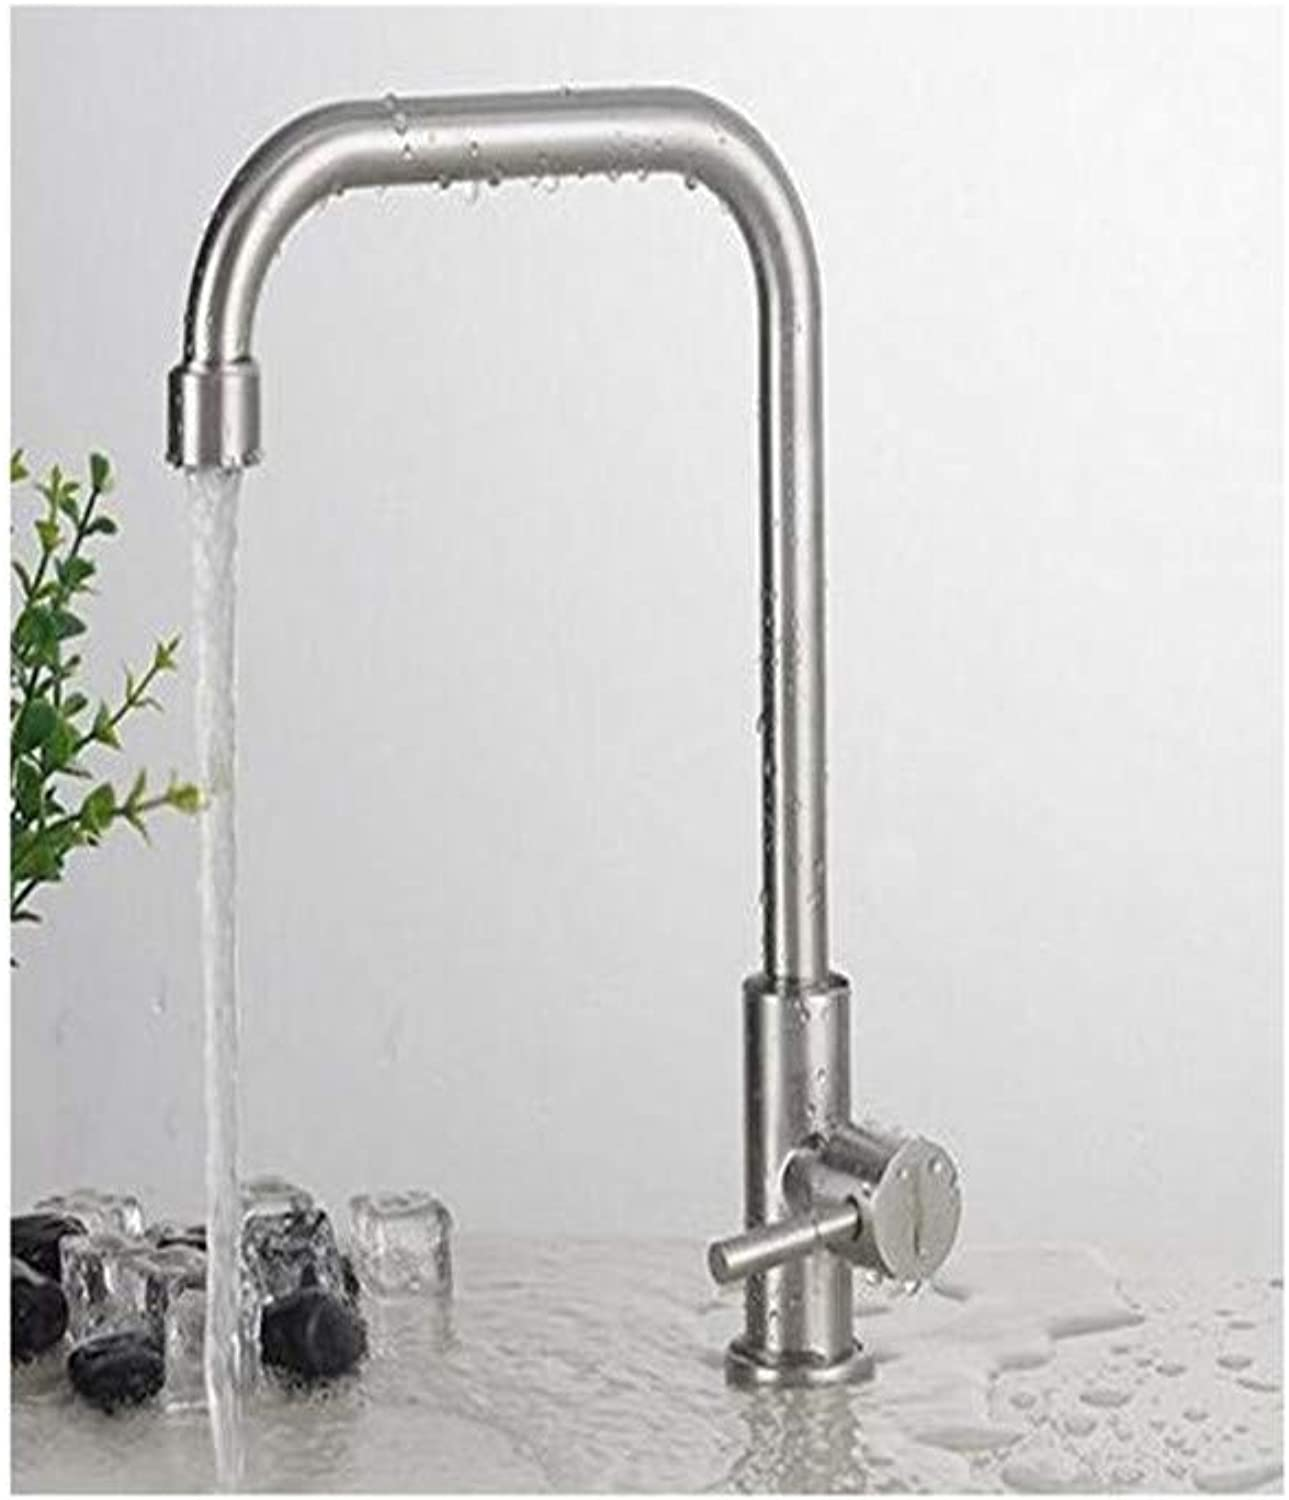 Vintage Brass Hot and Cold Bathroom Kitchen Faucetstainless Steel Single Cold Faucetsink Cylindrical greenical Faucet